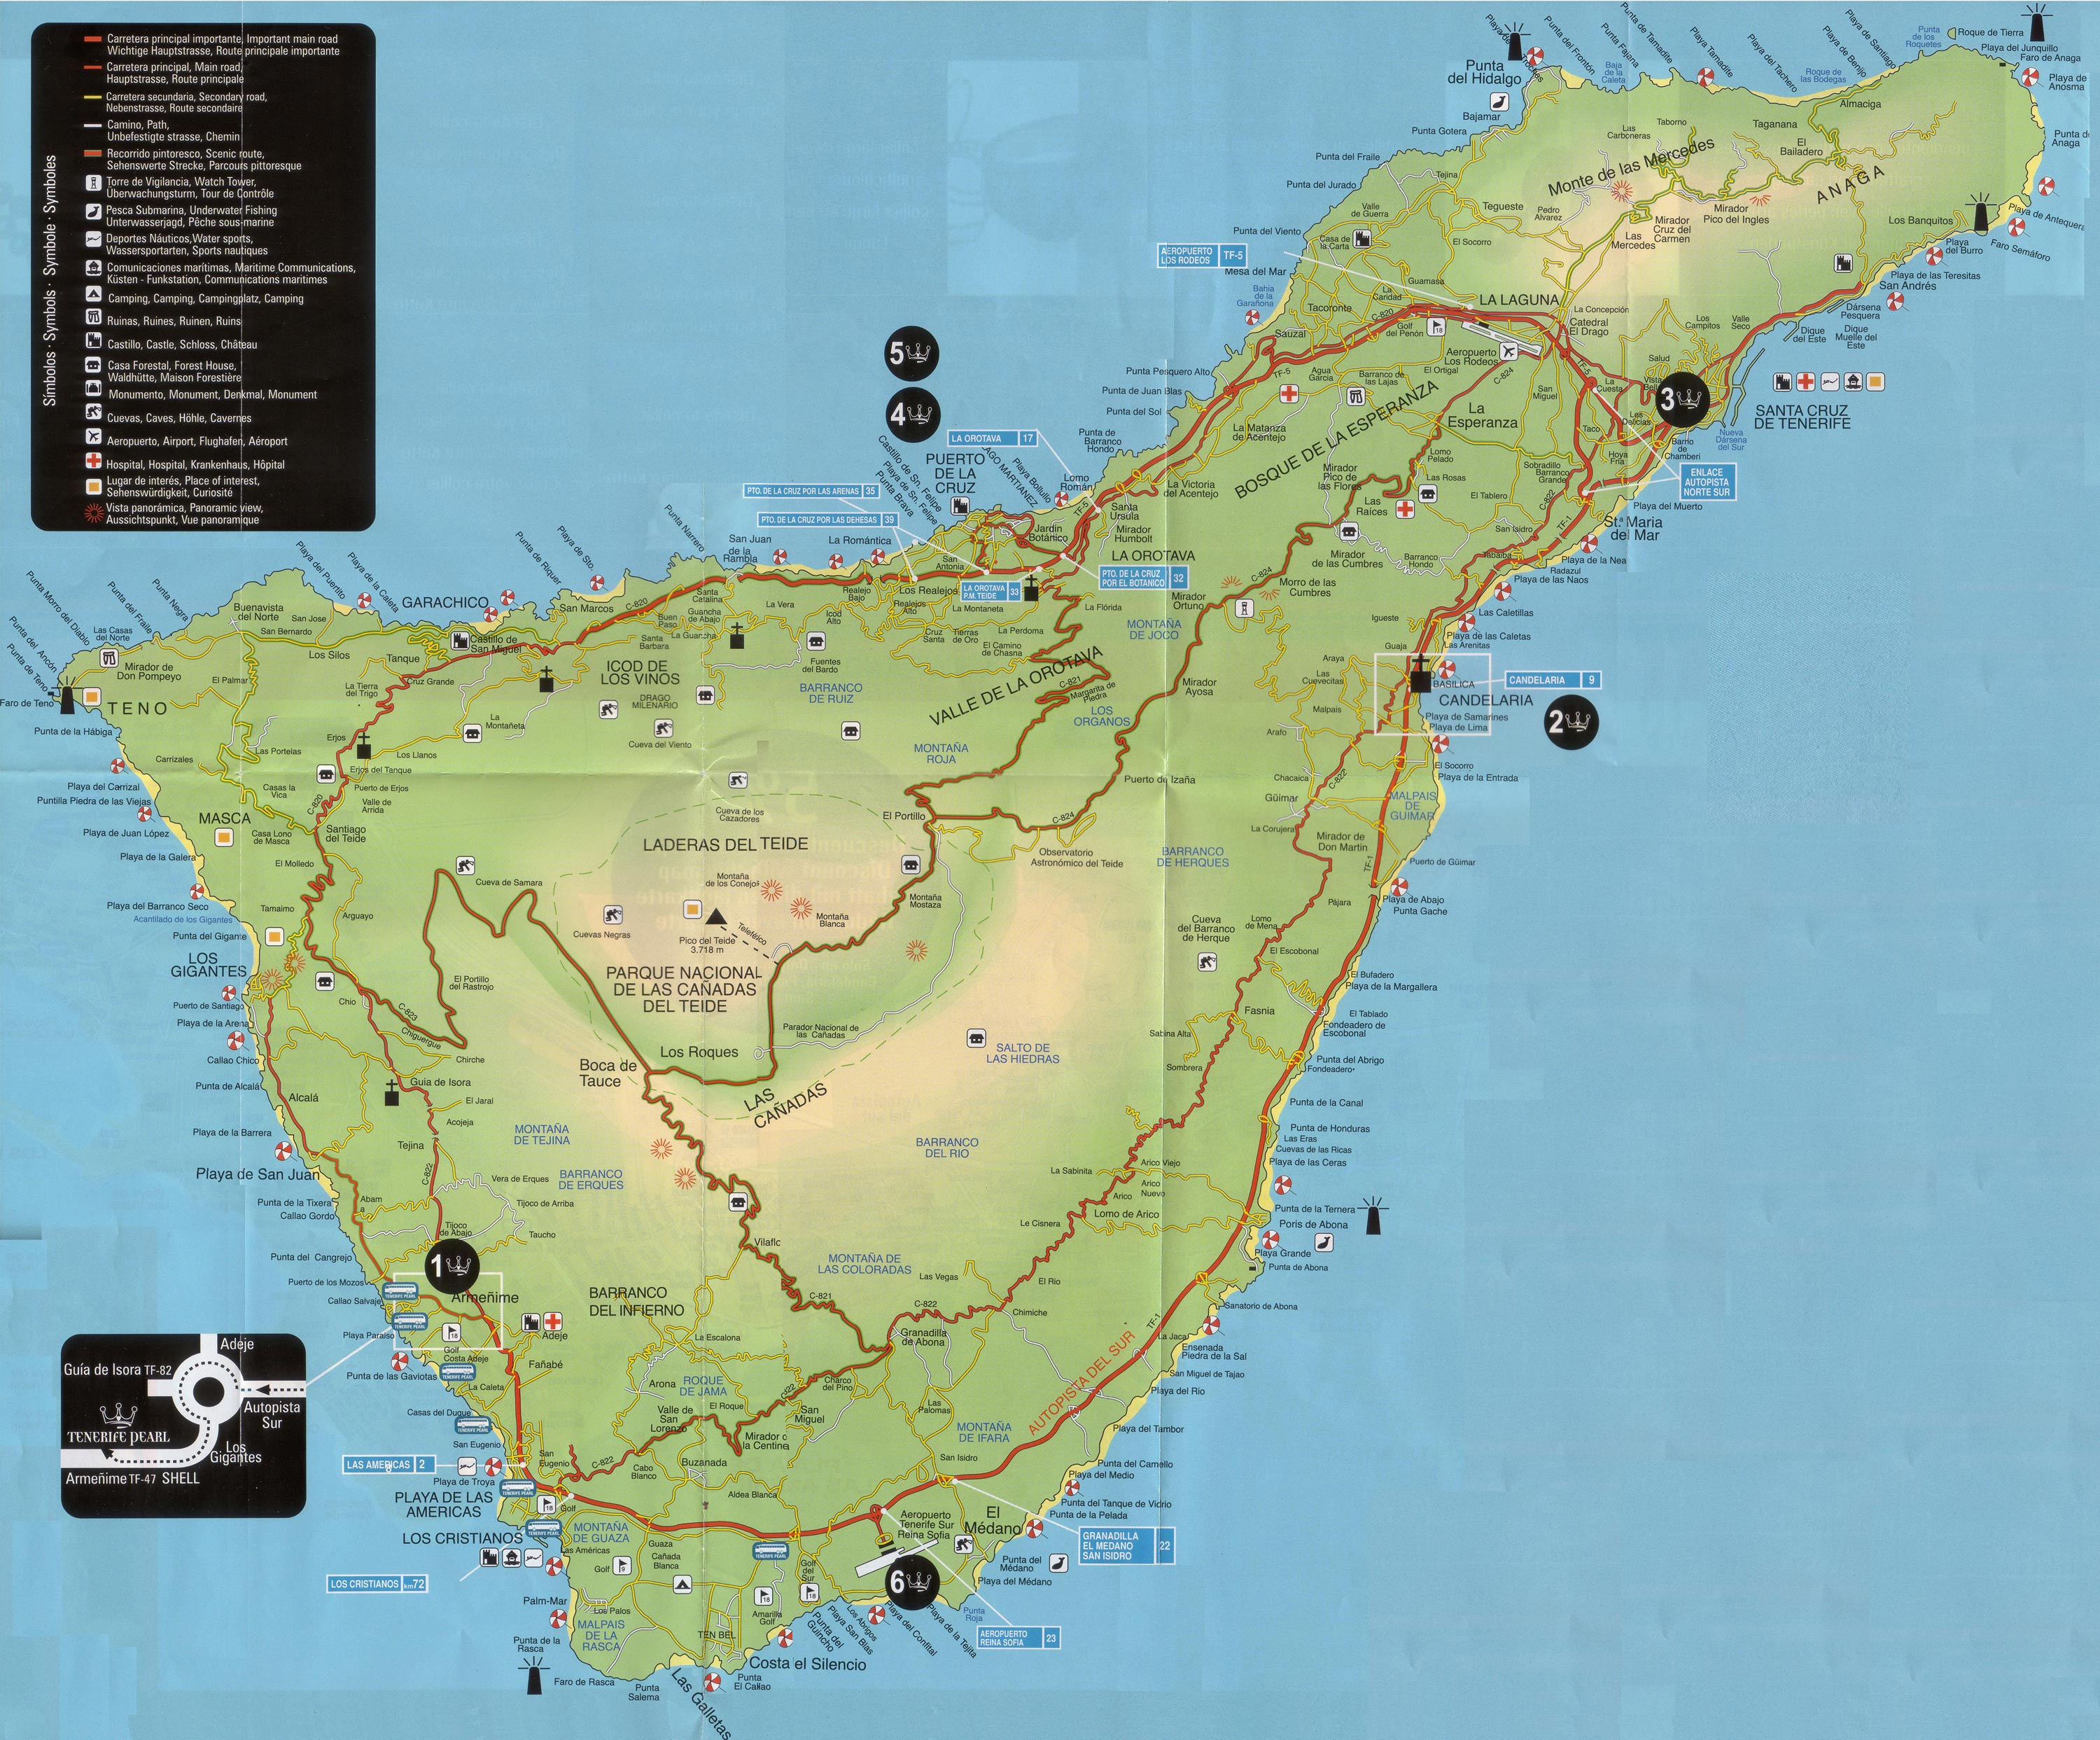 Tenerife Island tourist map